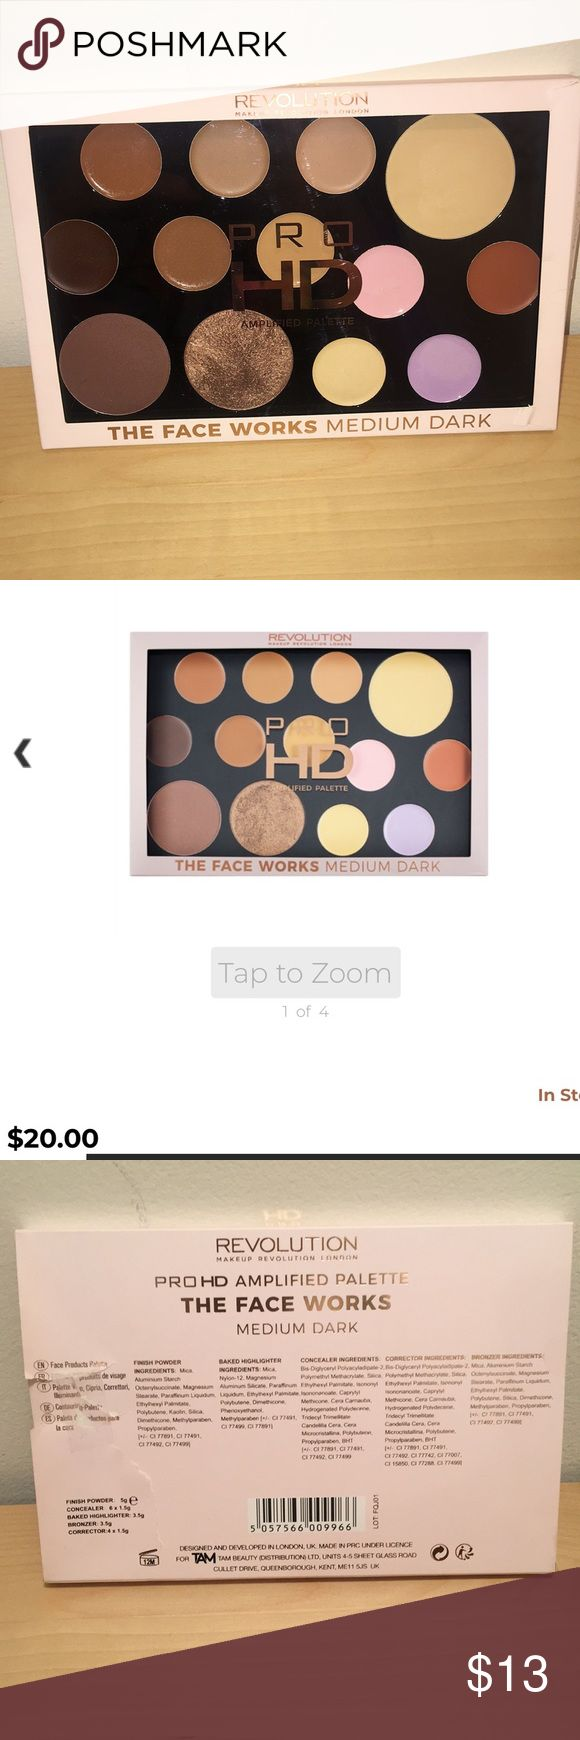 Makeup Revolution Pro HD Palette NEW! Only swatched the